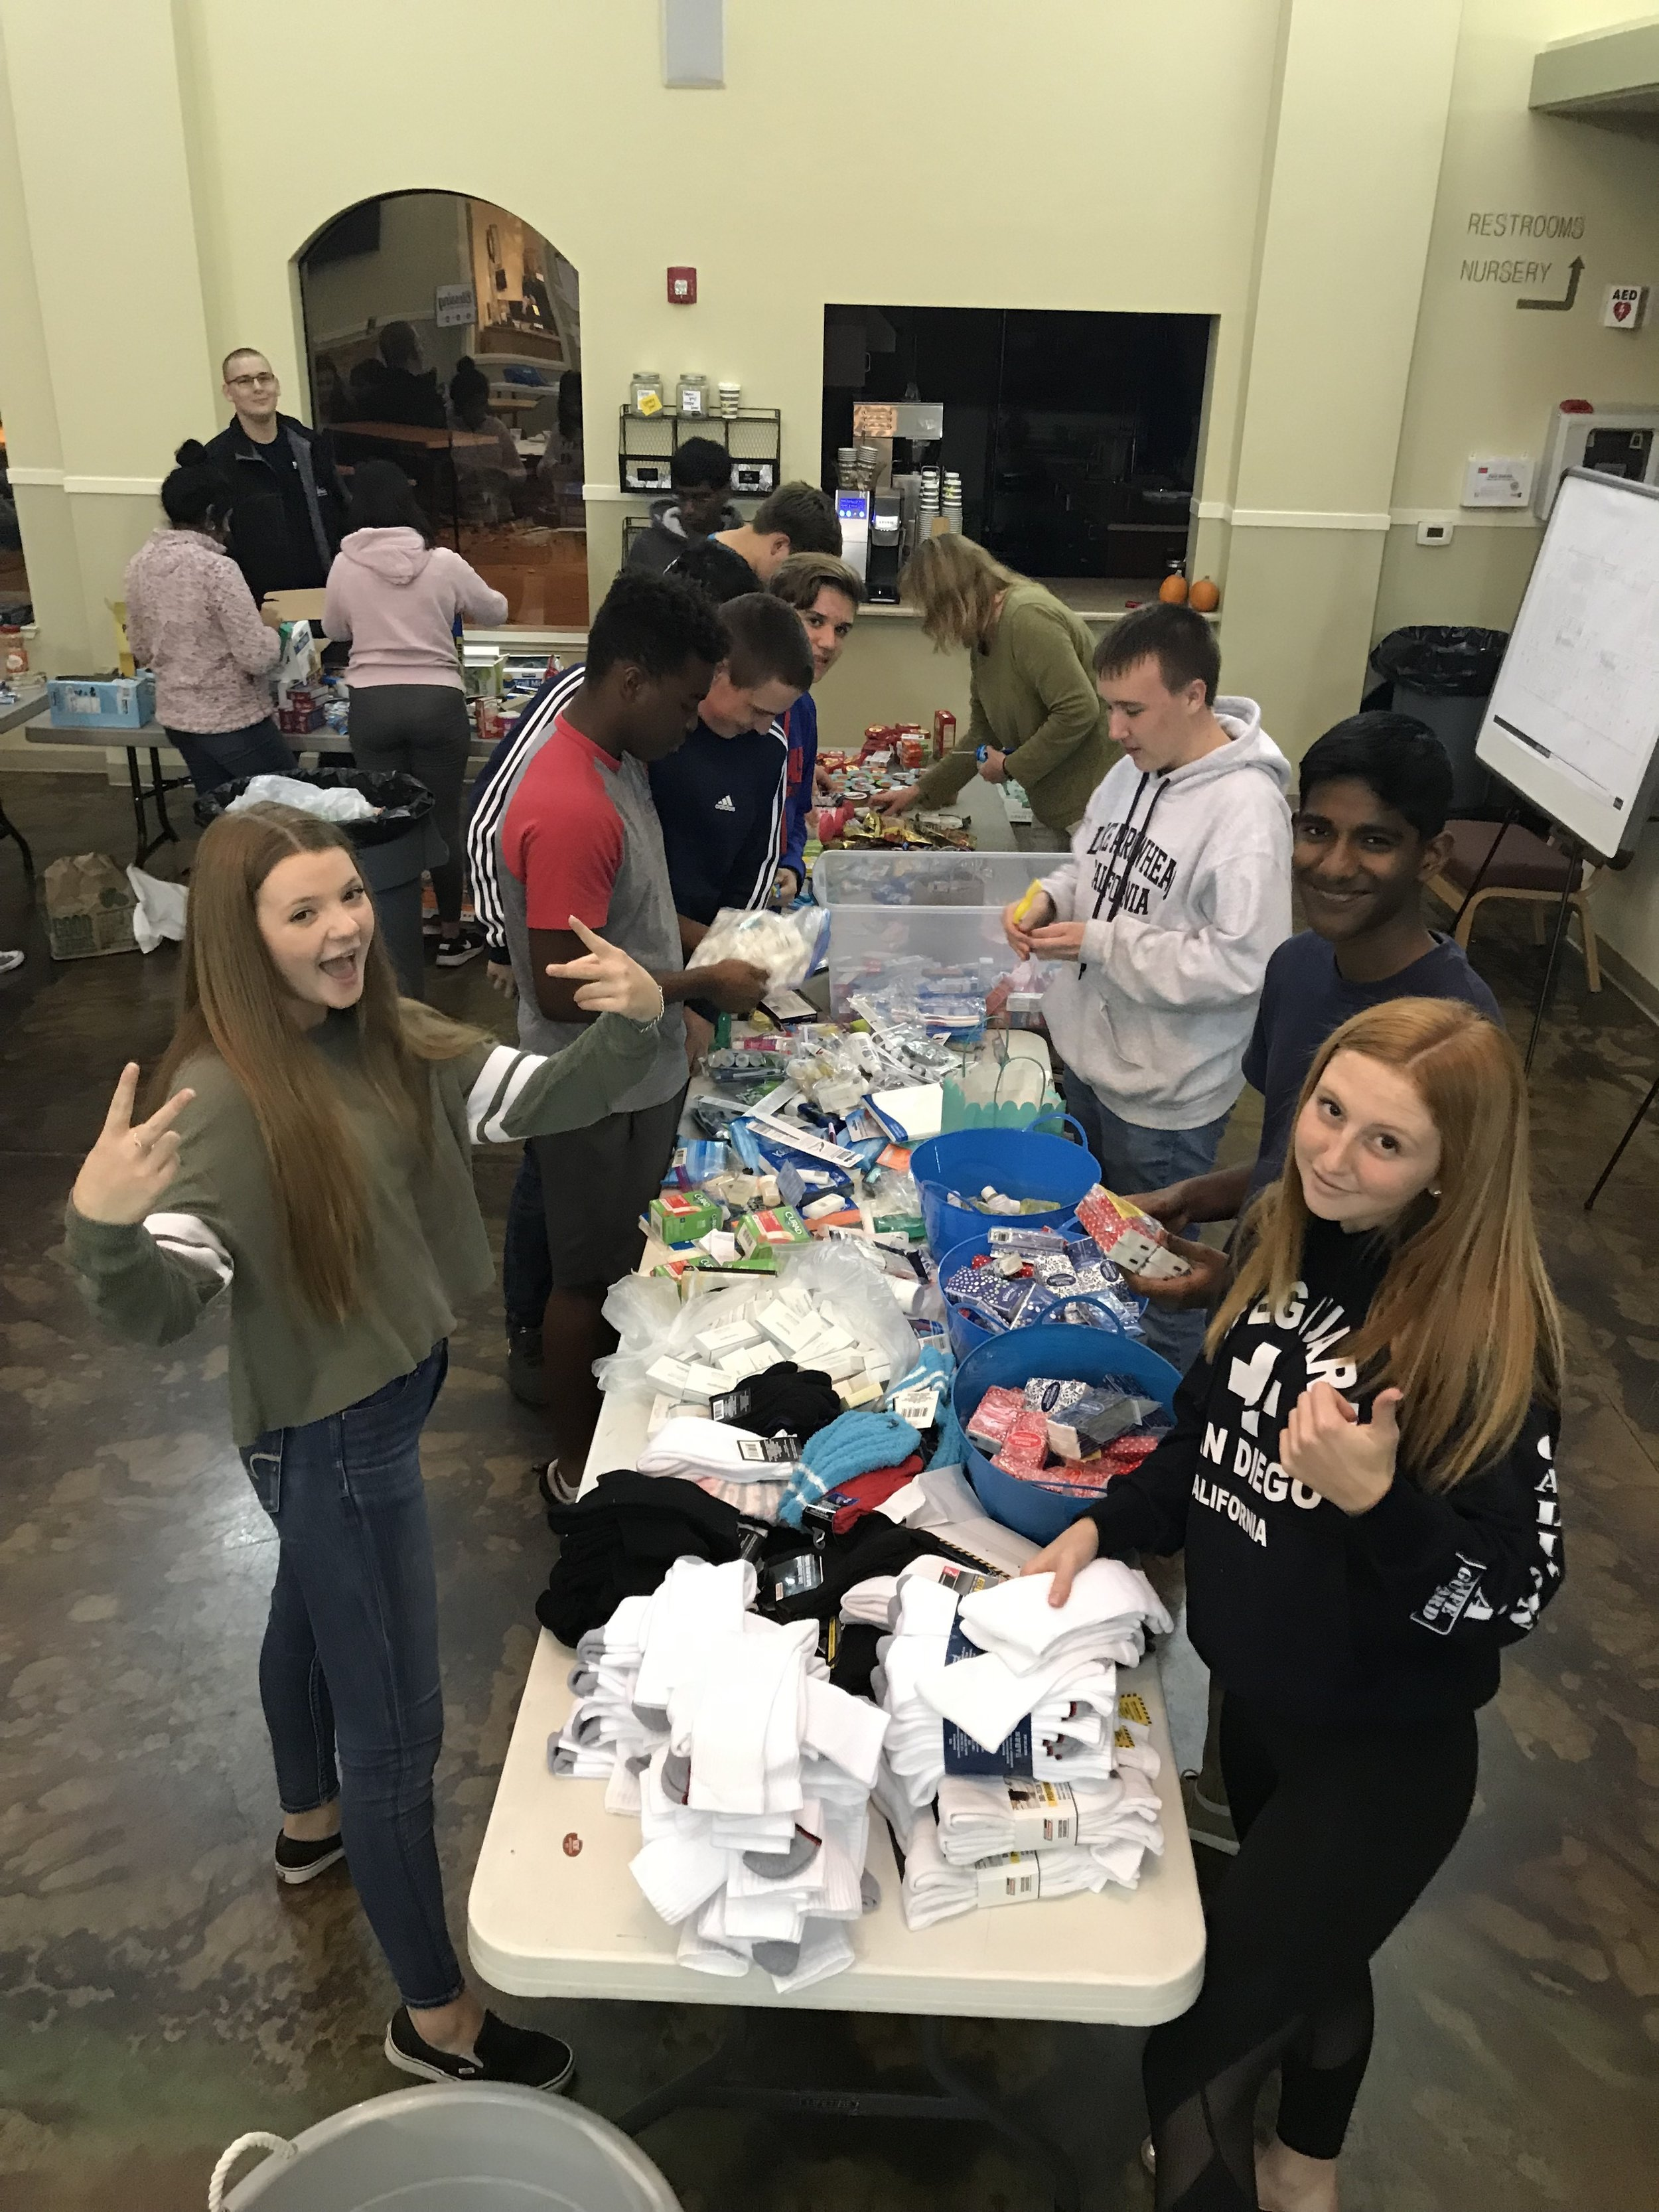 Holiday Care Packages - Assemble and distribute essentials to those in need in our community